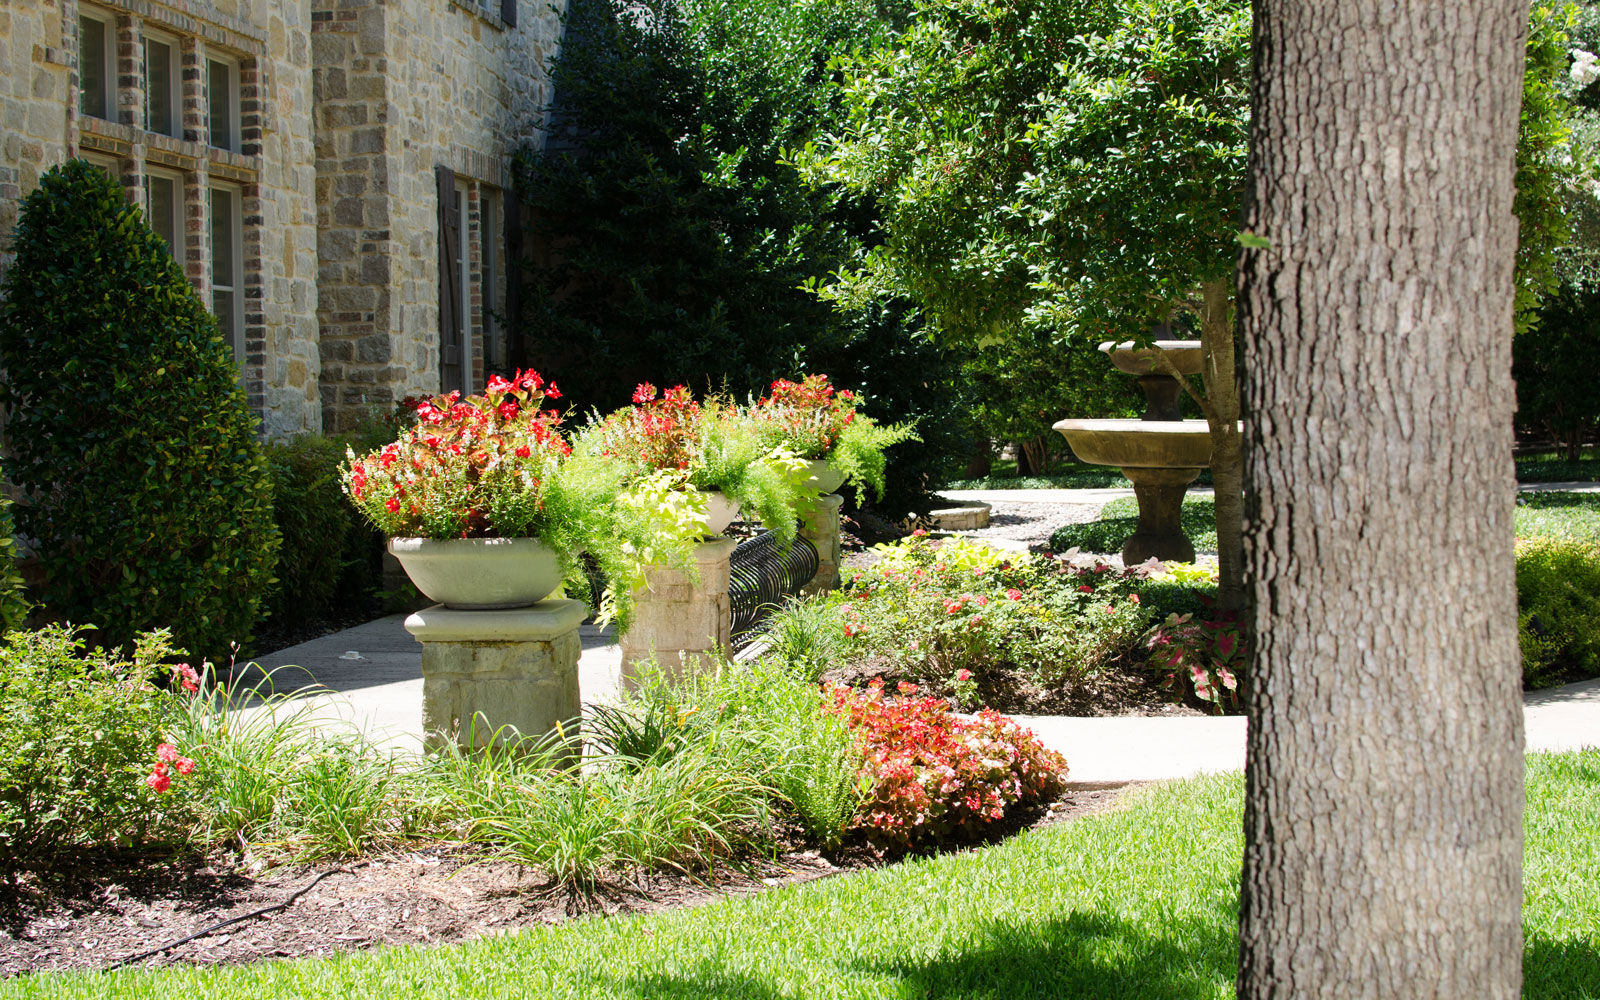 Landscape Design - Schmitz Garden Center